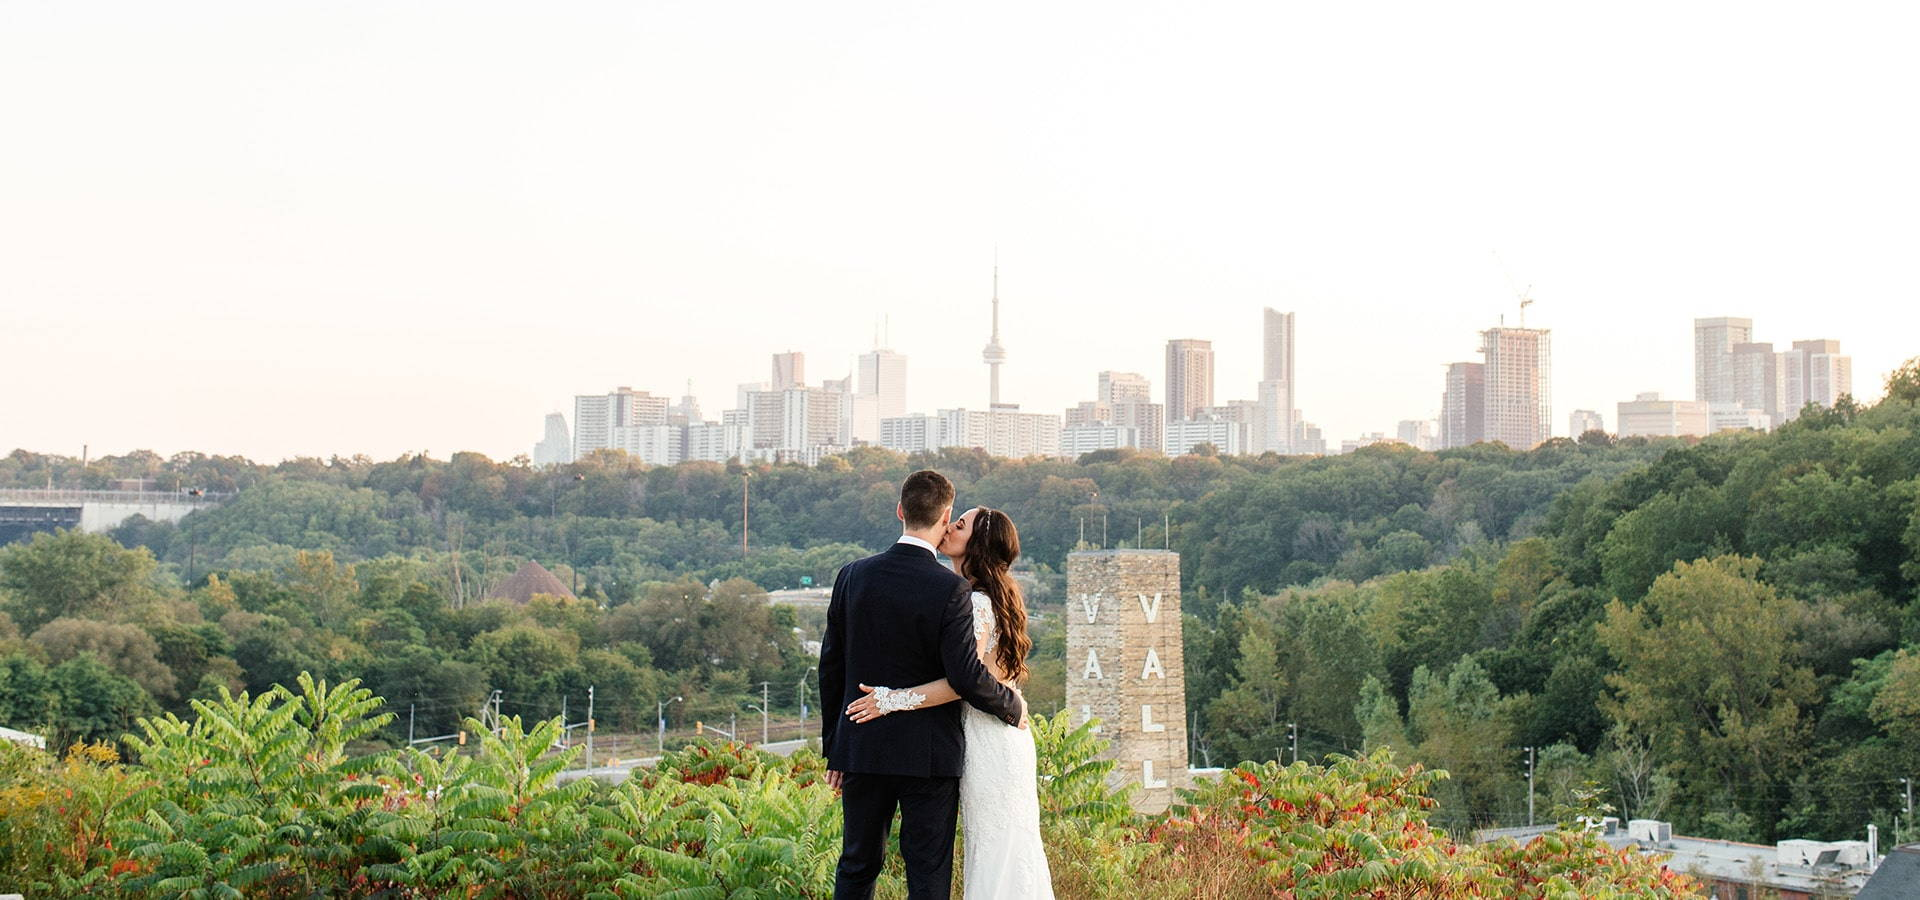 Hero image for Krista & Kyle's Industrial Wedding at Evergreen Brick Works